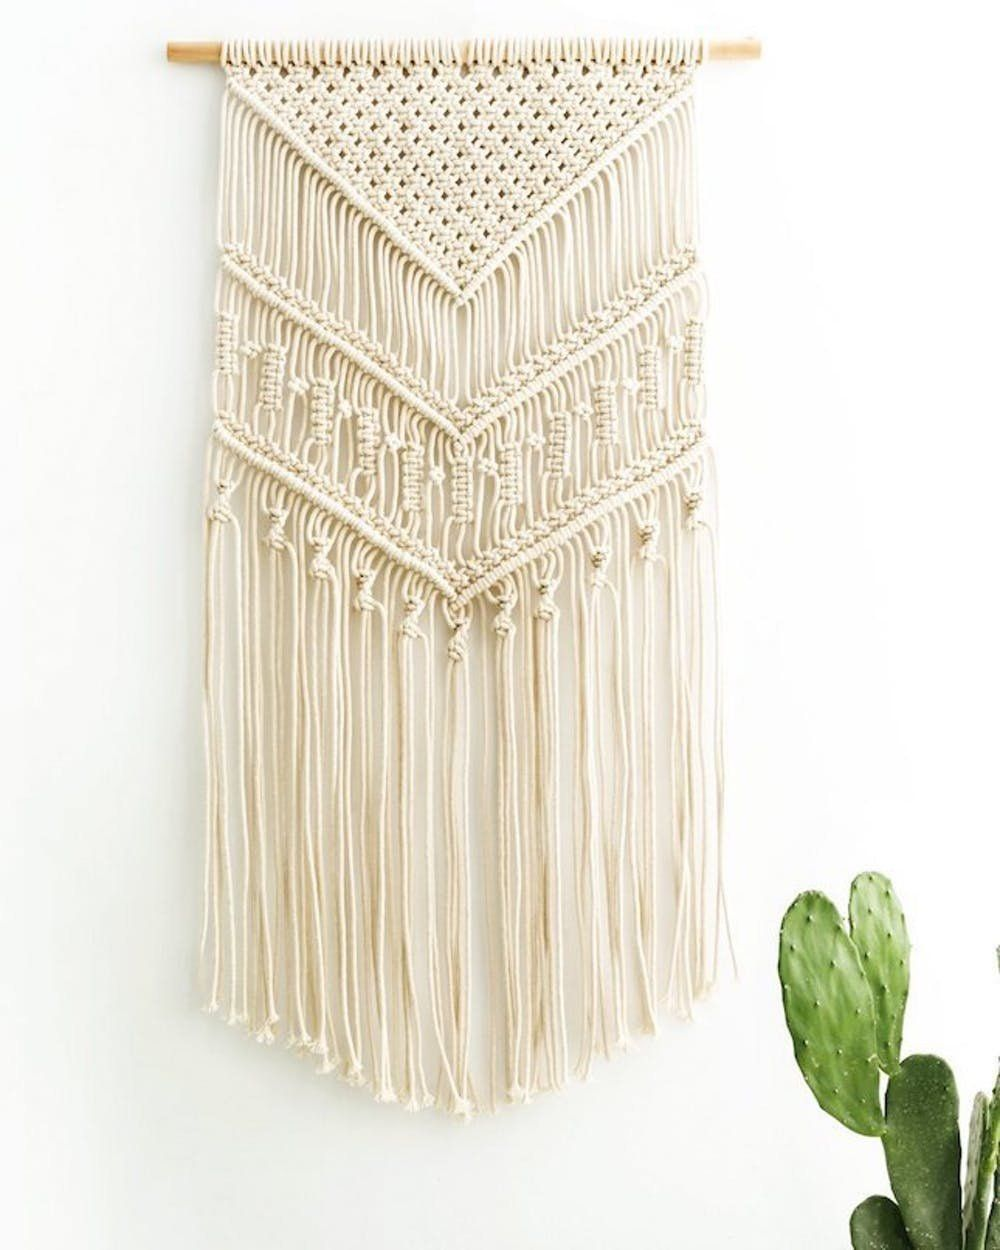 40 housewarming gift ideas that'll make you the best guest ever, including these woven wall hanging.